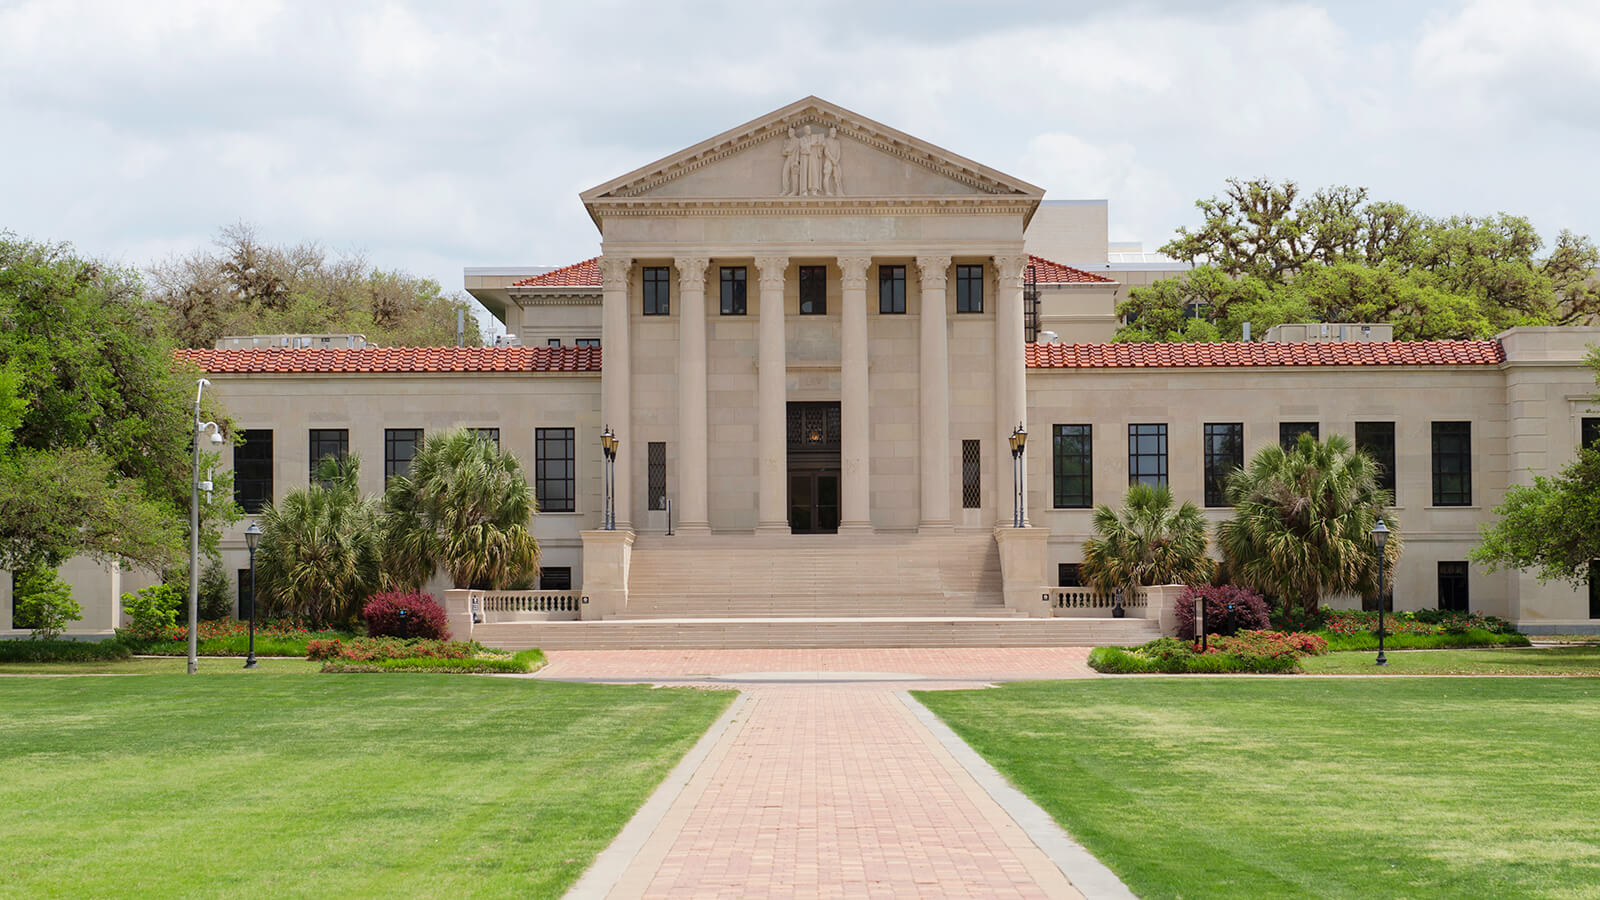 Louisiana State University and Agricultural & Mechanical College